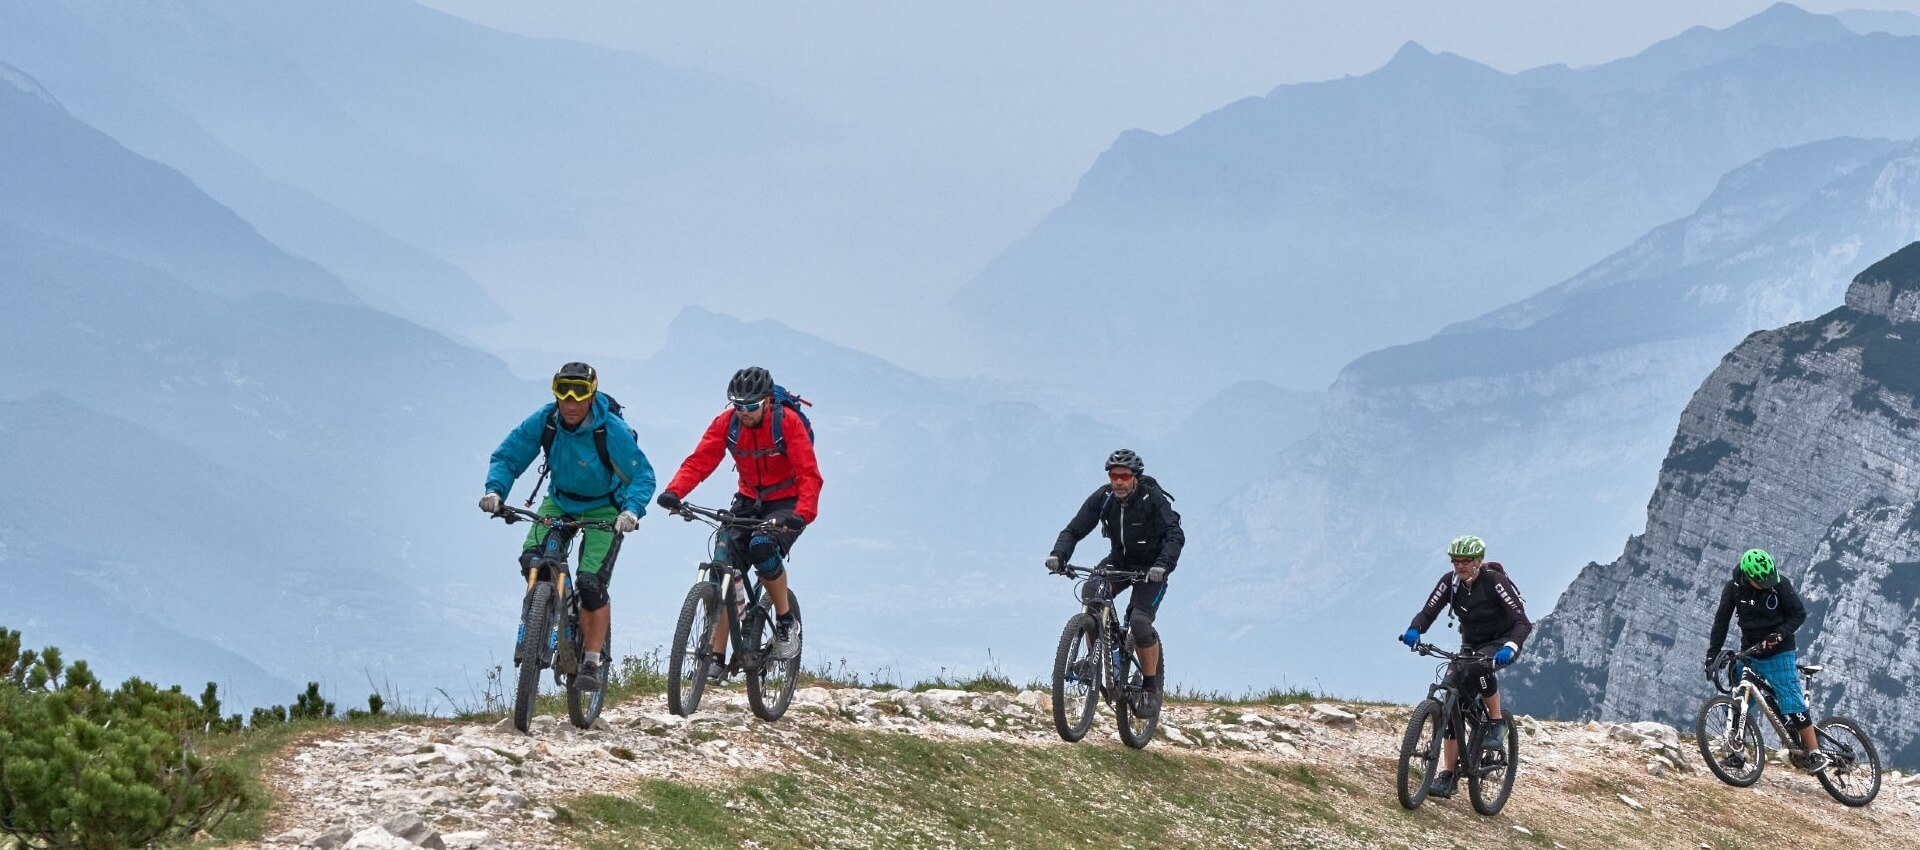 Sommer Incentives - E-MTB Tour